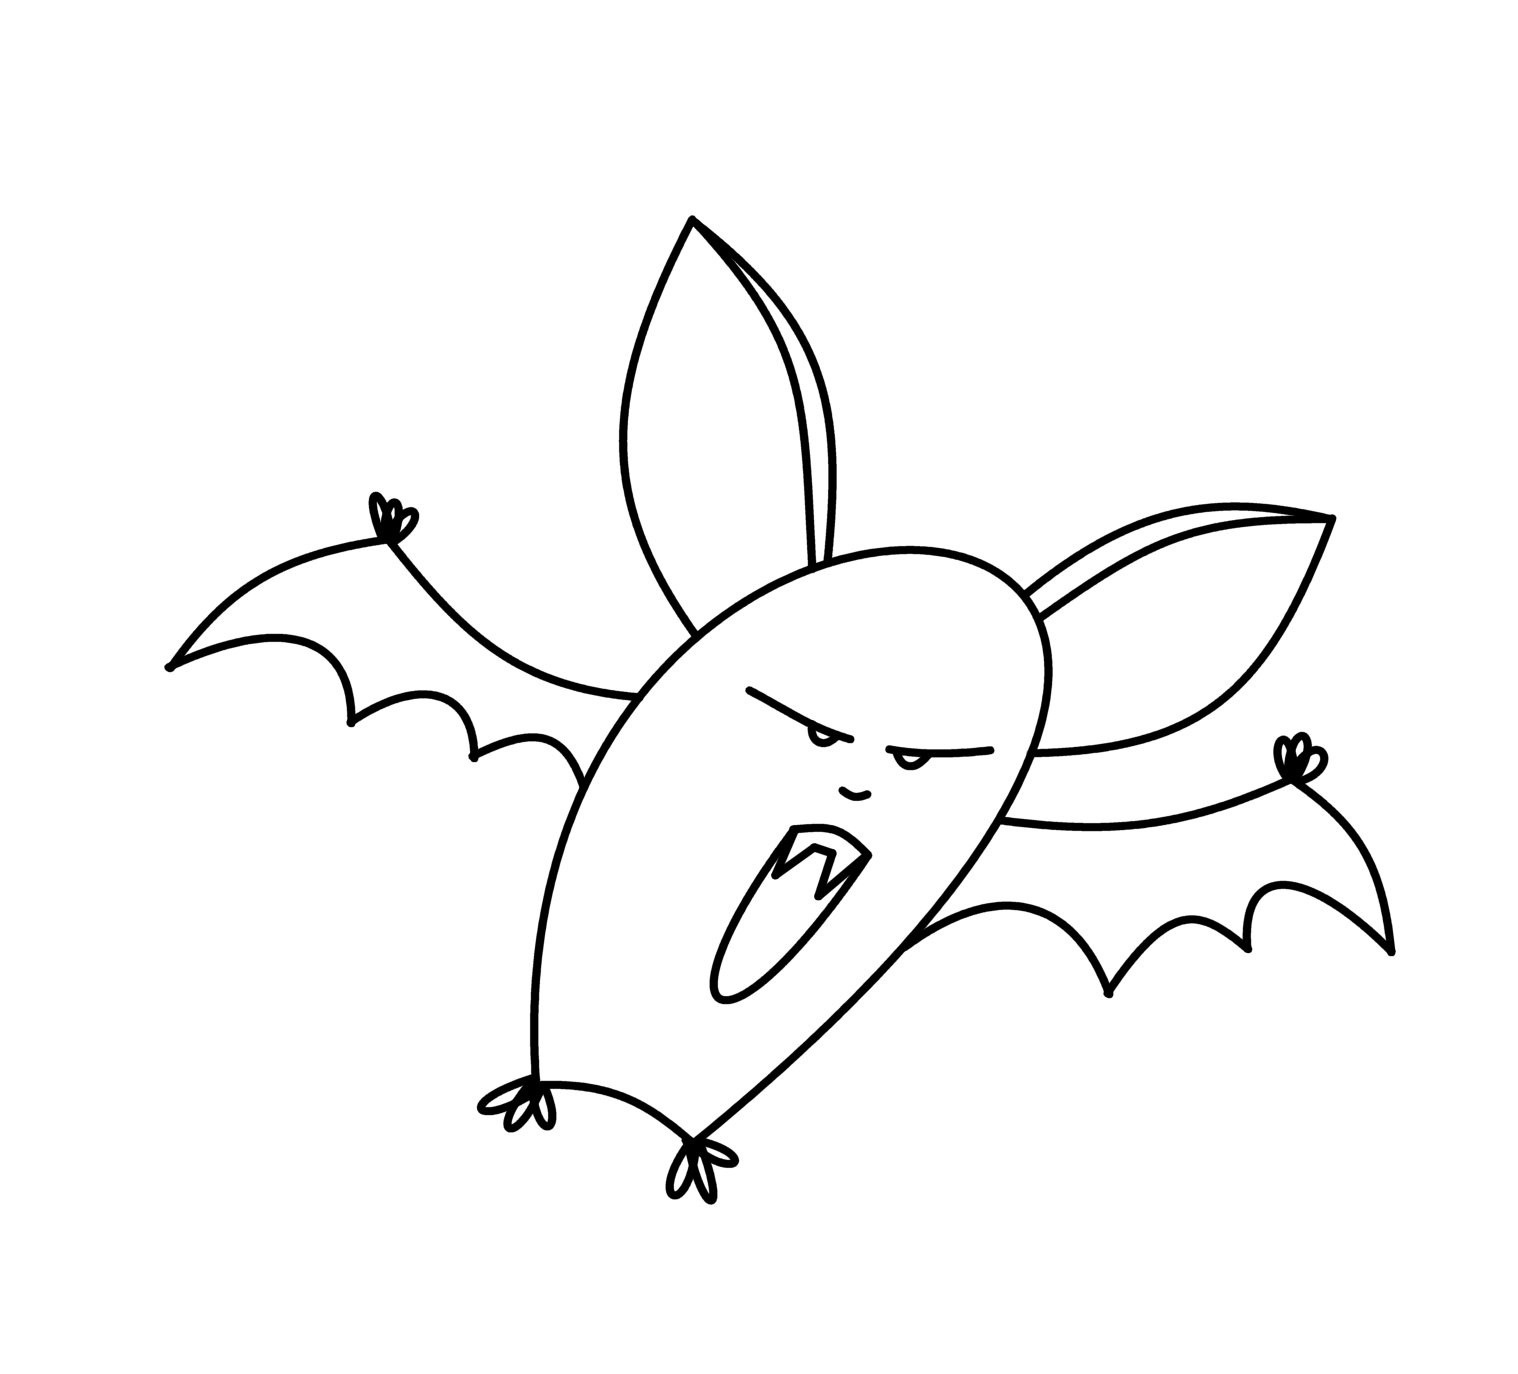 How To Draw Cartoons: Vampire Bat